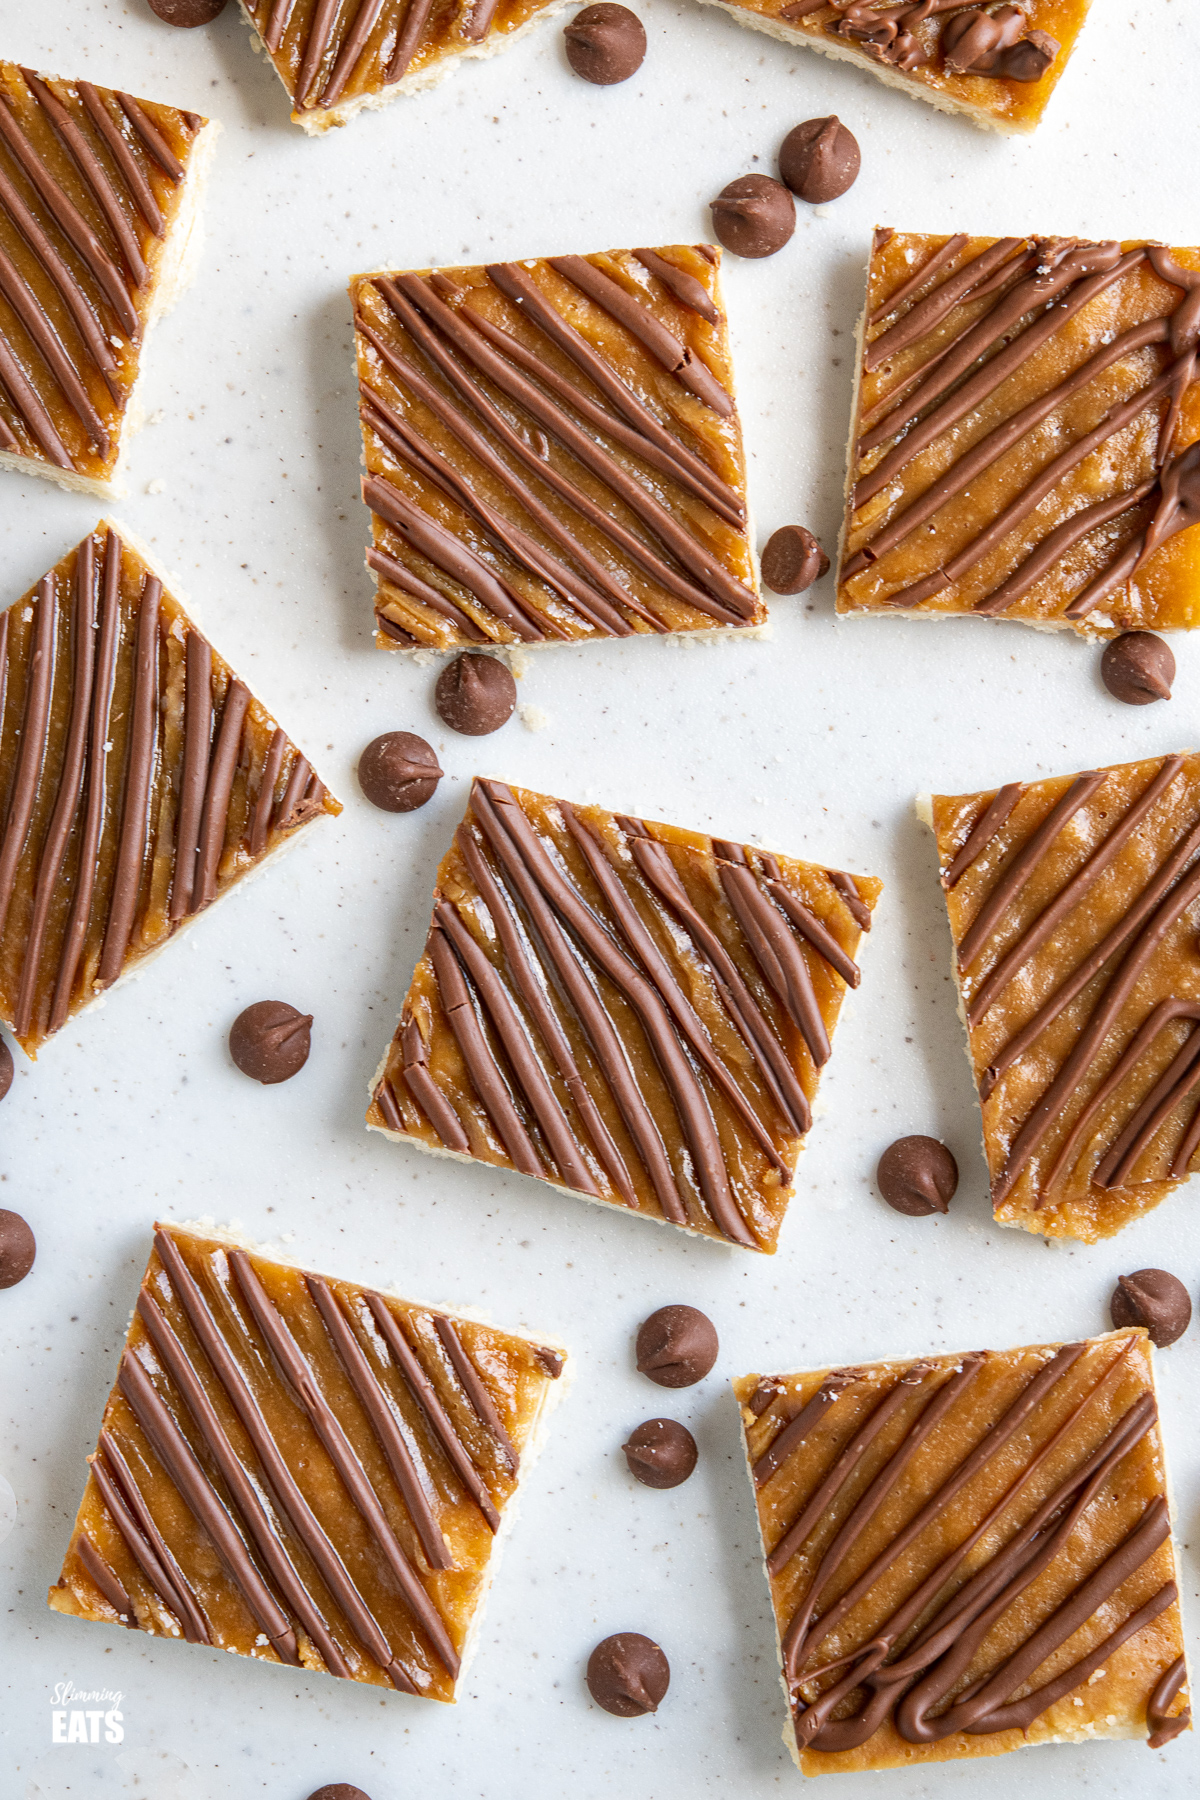 sliced  Millionaires Shortbread Squares on a white board with scattered chocolate chips